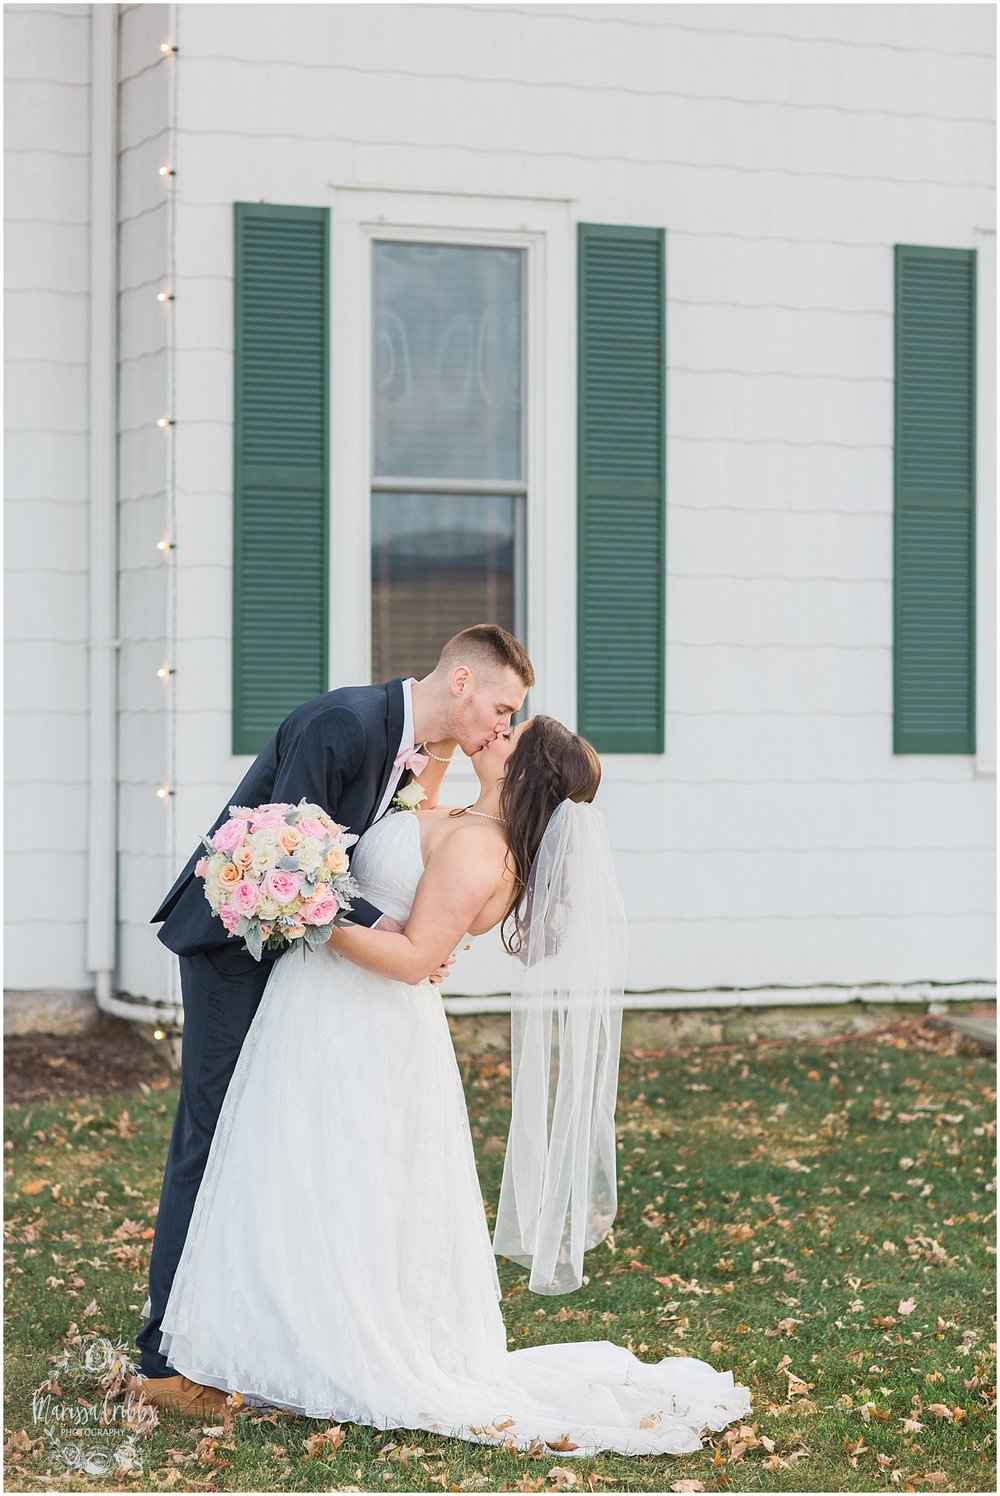 Thompson Barn Wedding | KC Wedding Photographer | Marissa Cribbs Photography_1521.jpg